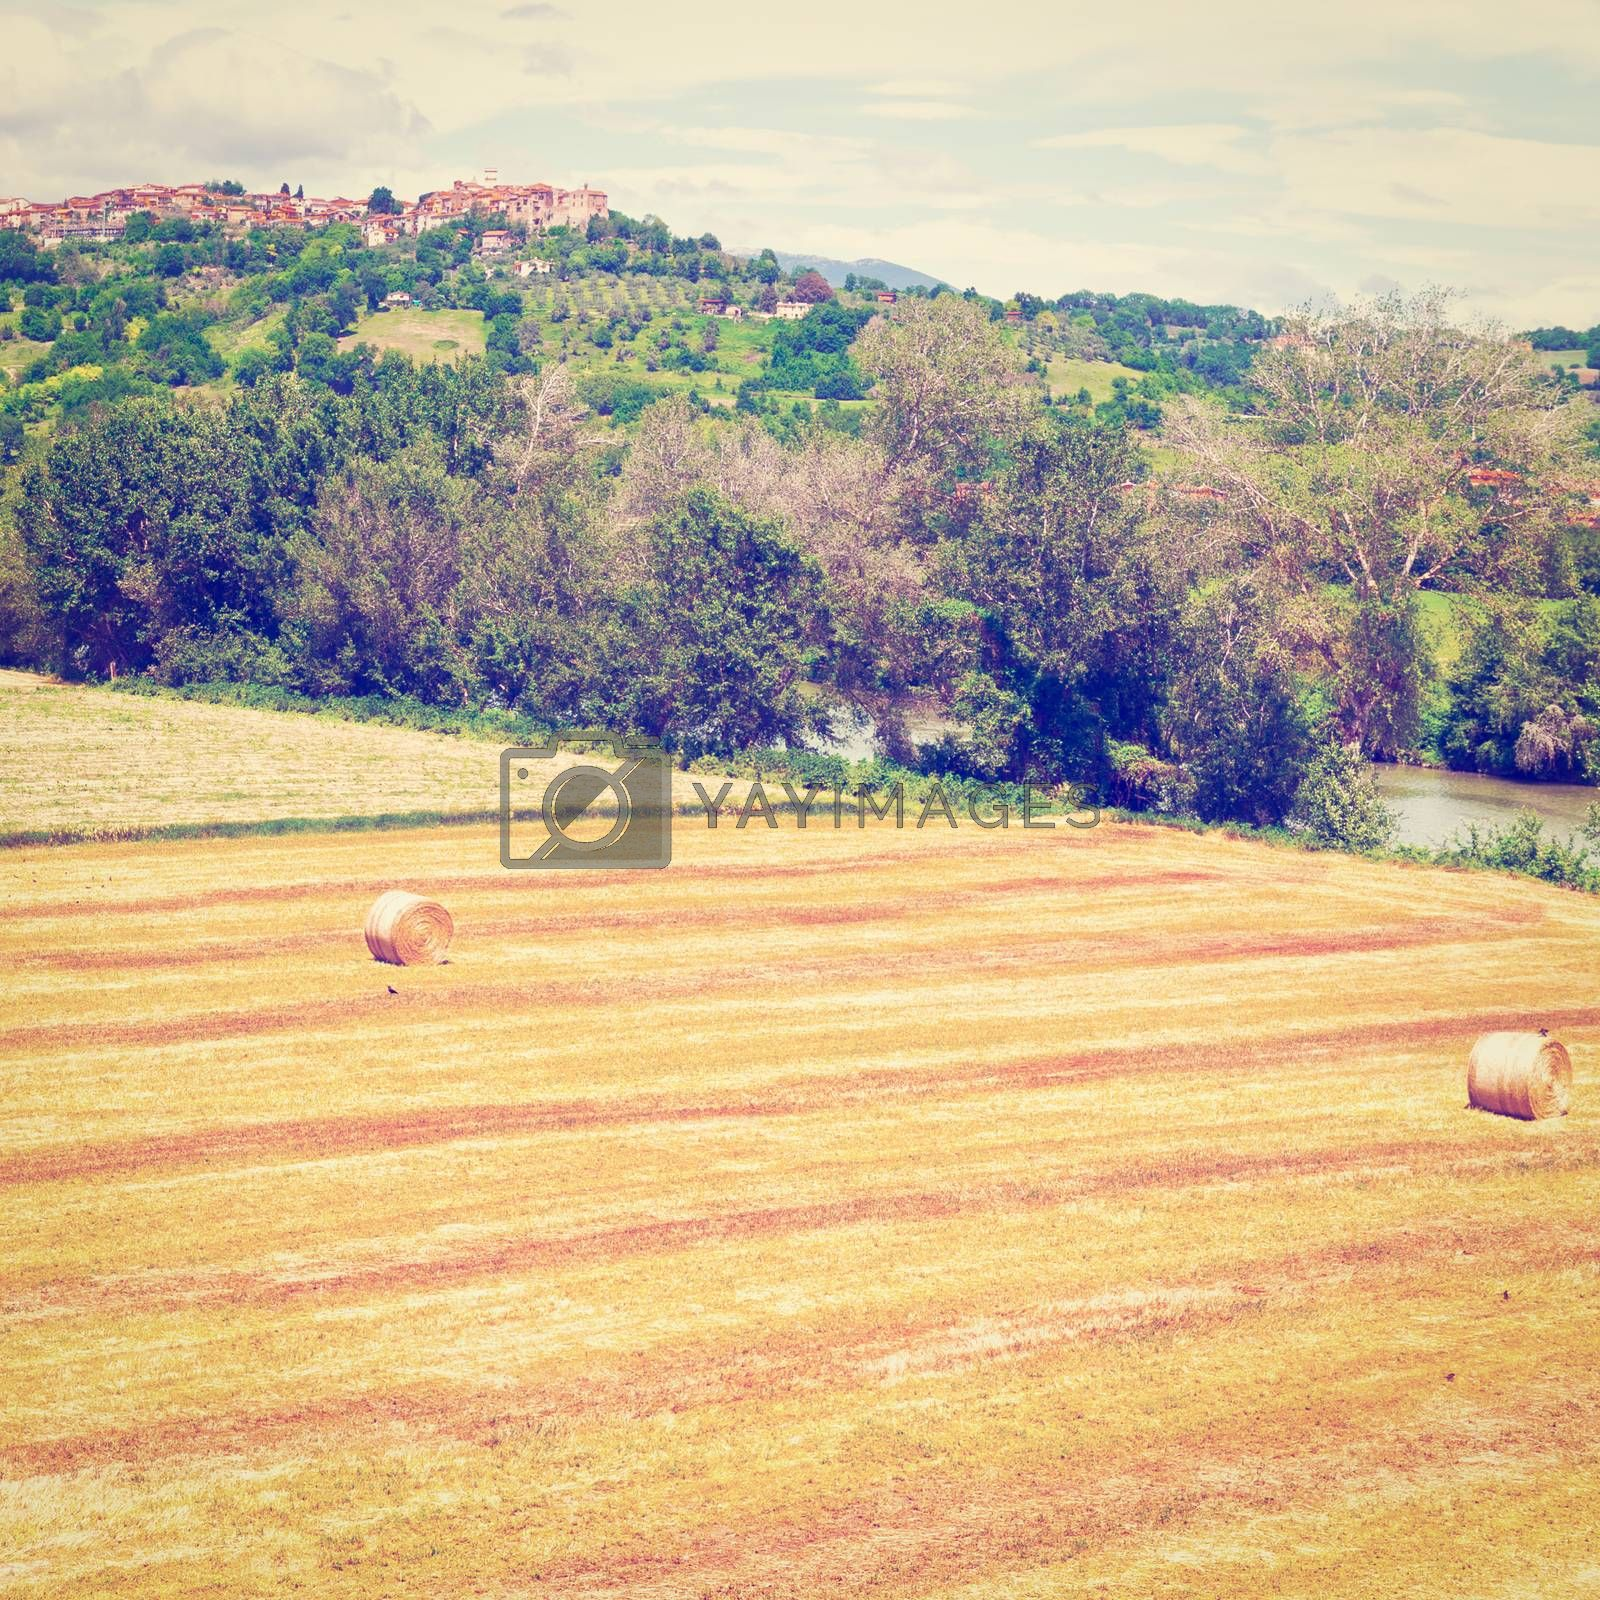 Tuscany Landscape with Many Hay Bales on the Background of the Medieval City, Instagram Effect